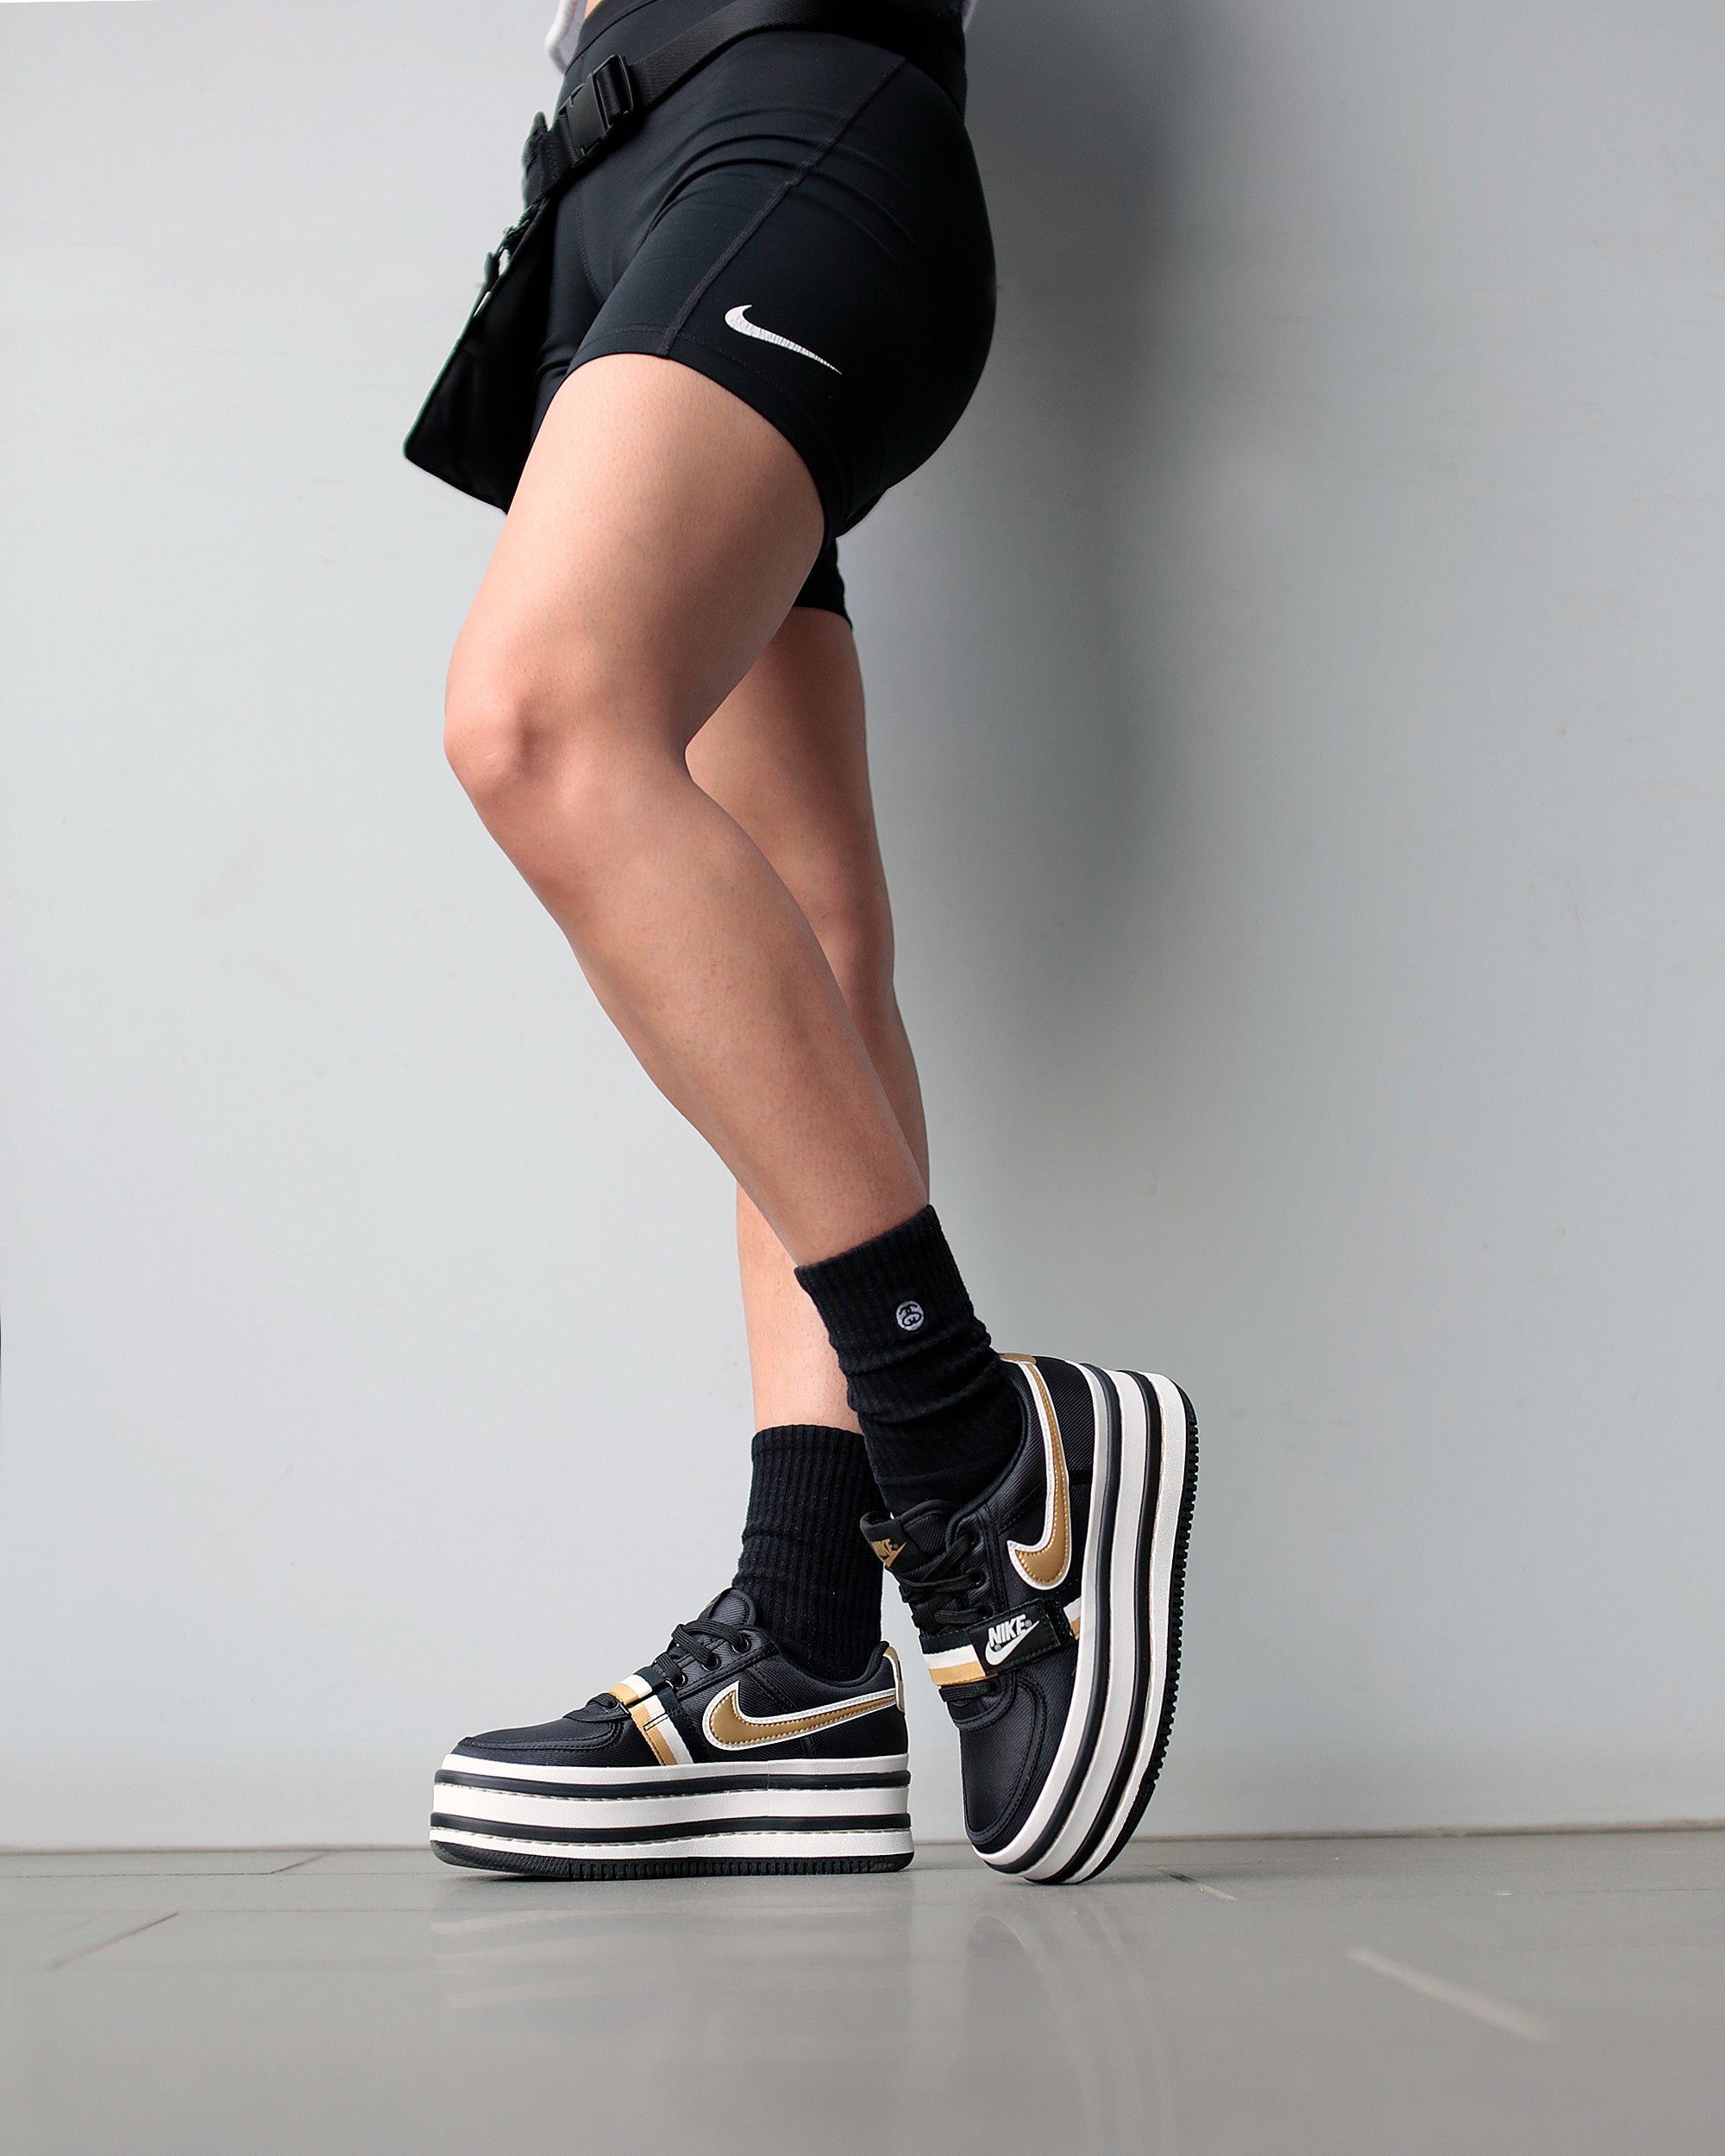 8f12d427652 ... spain the nike womens vandal 2k double stack 120 releasing saturday 5 5  at 124b allen